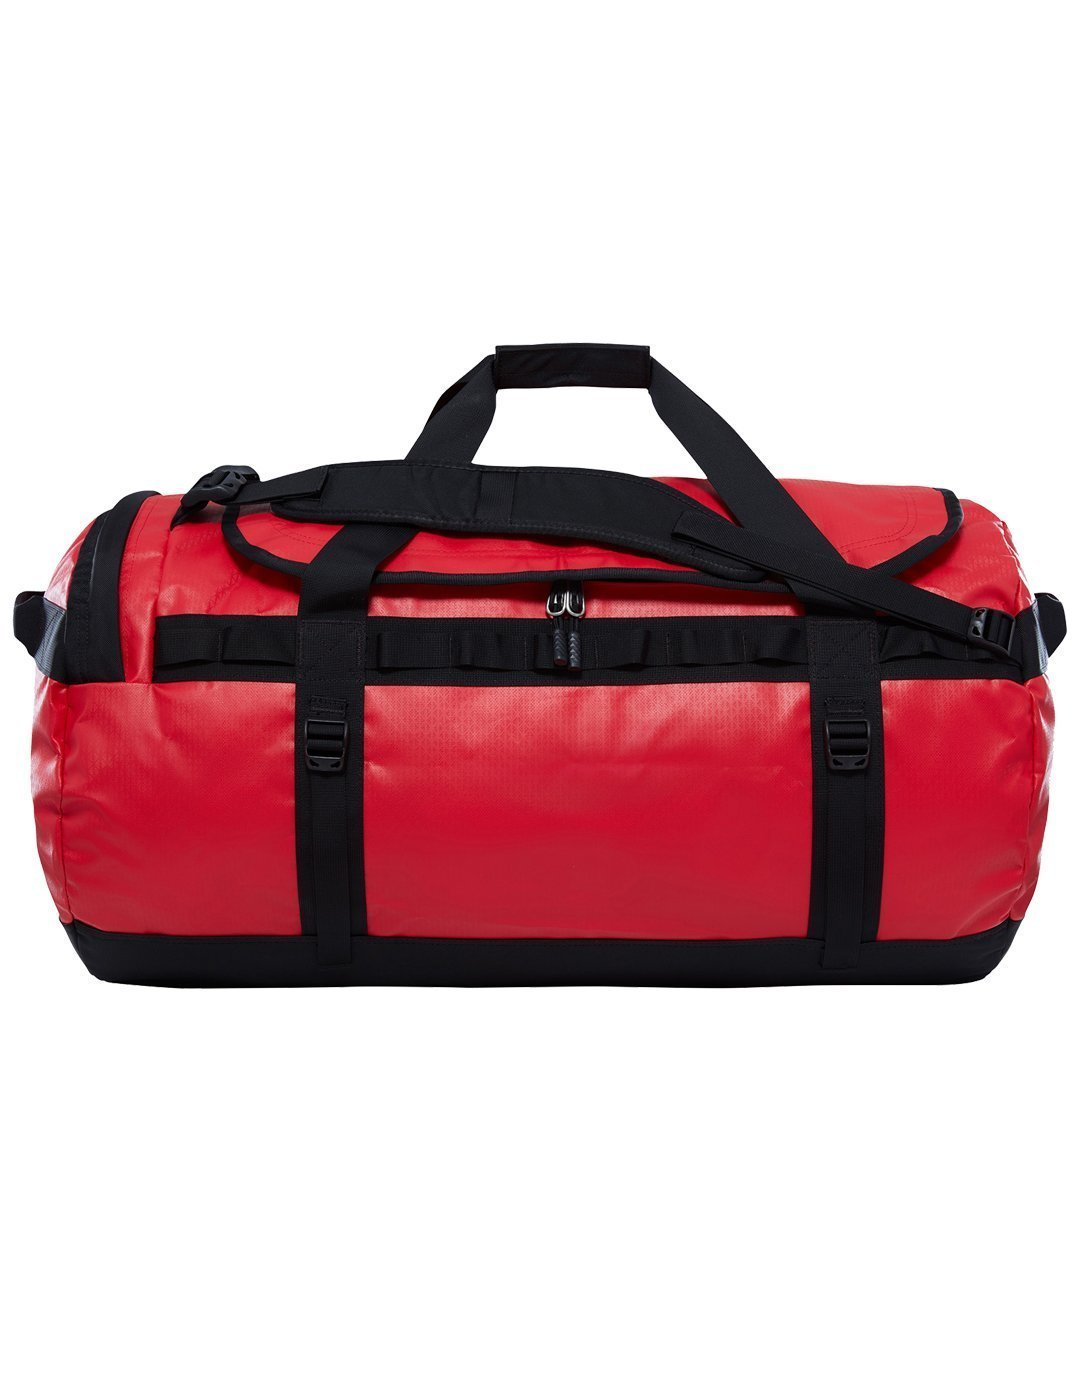 a1a31701bec The North Face Unisex Base Camp Duffel Bag: Amazon.co.uk: Luggage